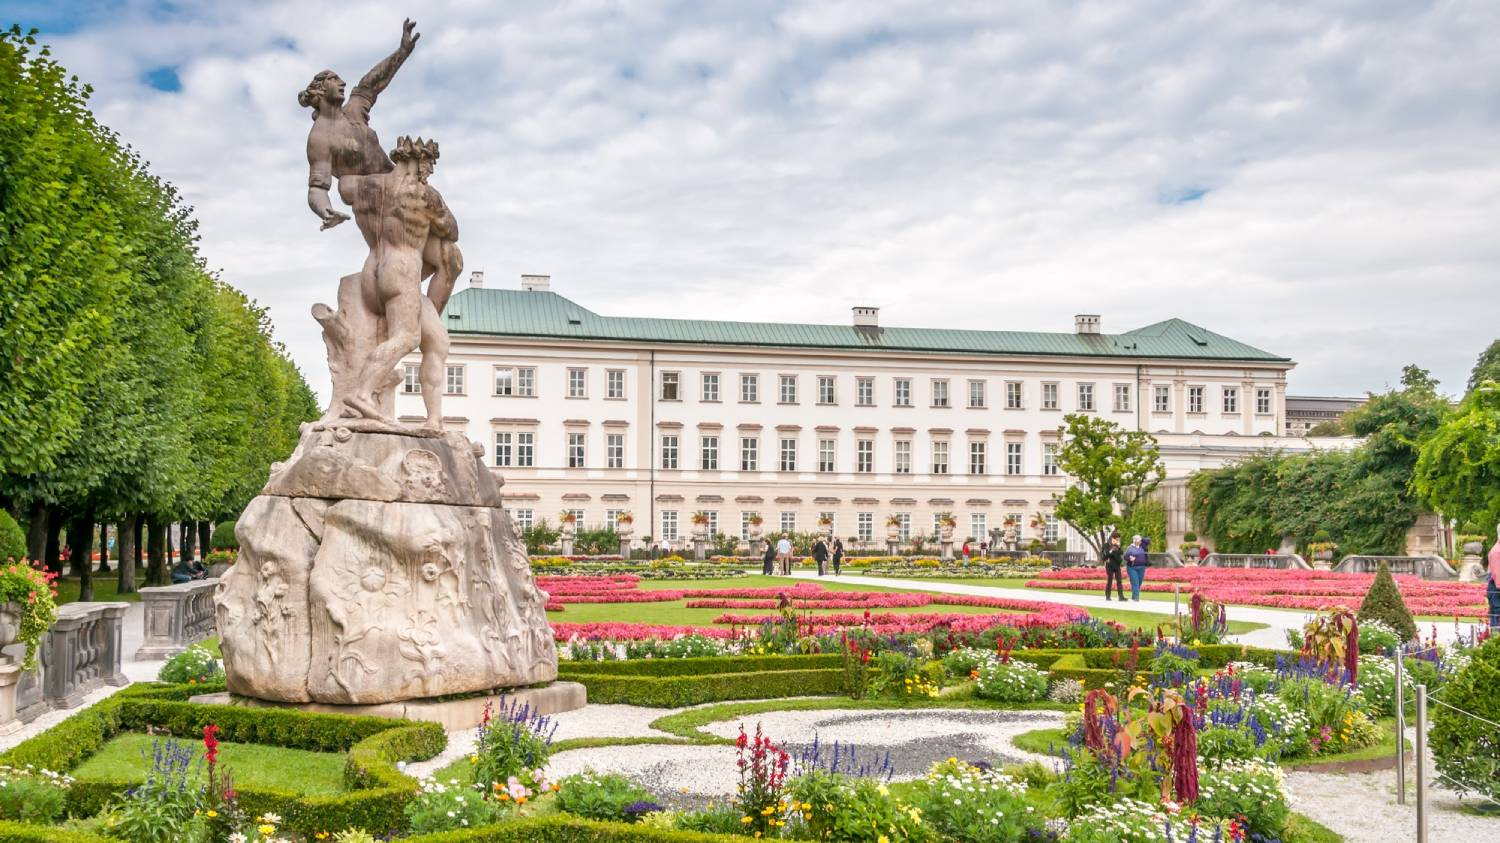 Mirabell Palace and Gardens - Things To Do In Salzburg